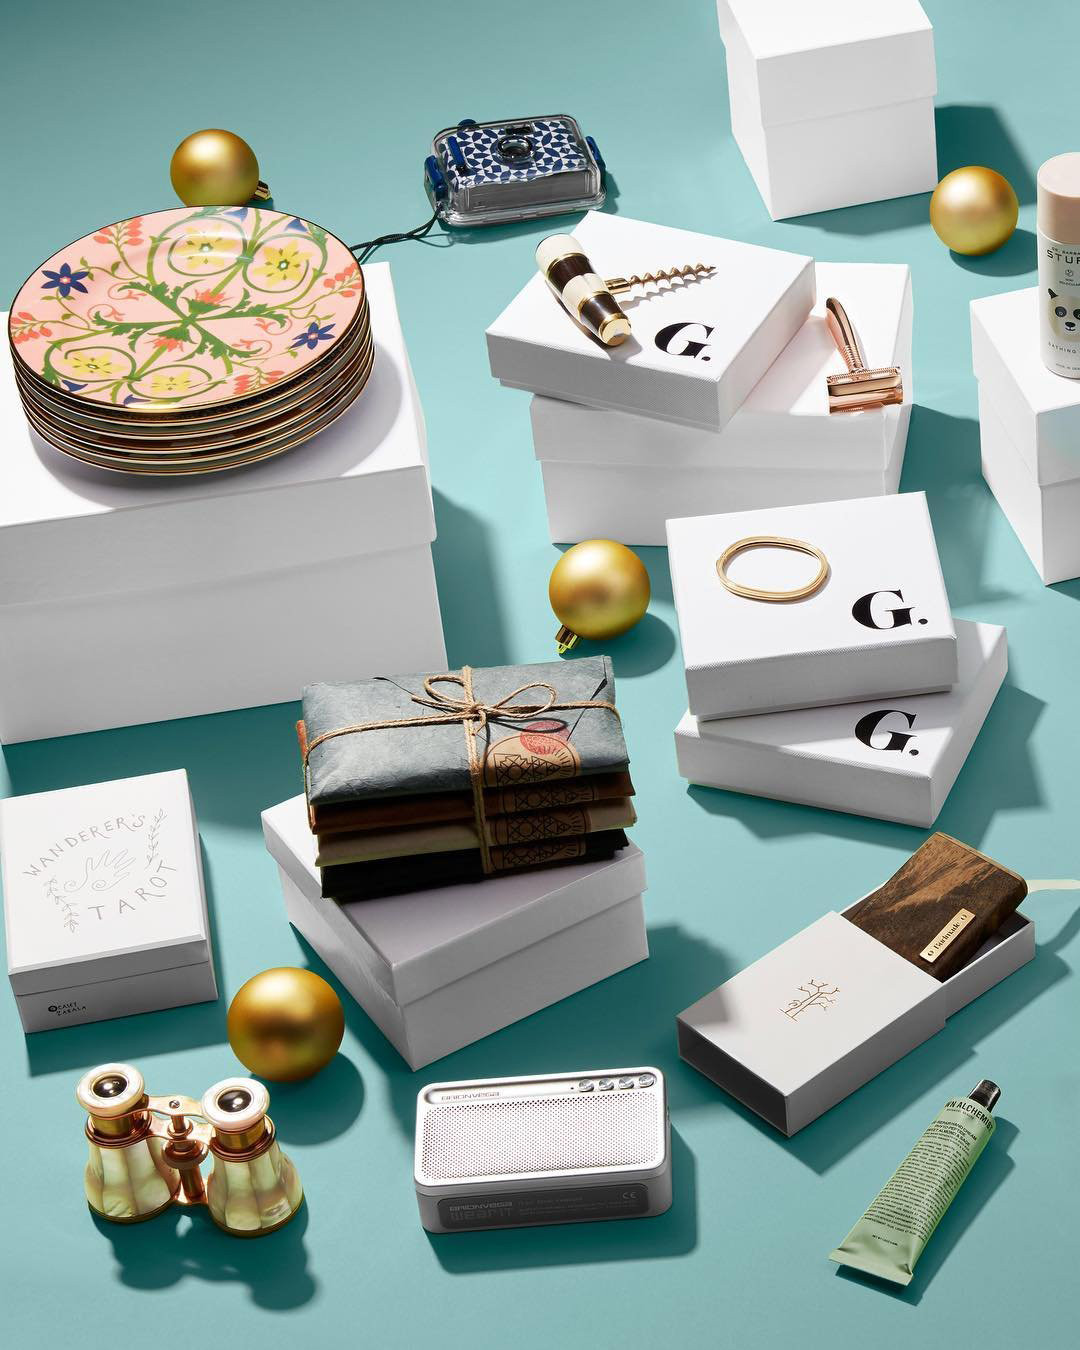 Moke + Goop Christmas Gifts + 2020 Goop's $650,000 Holiday Gift Guides Are the Definition of Extra